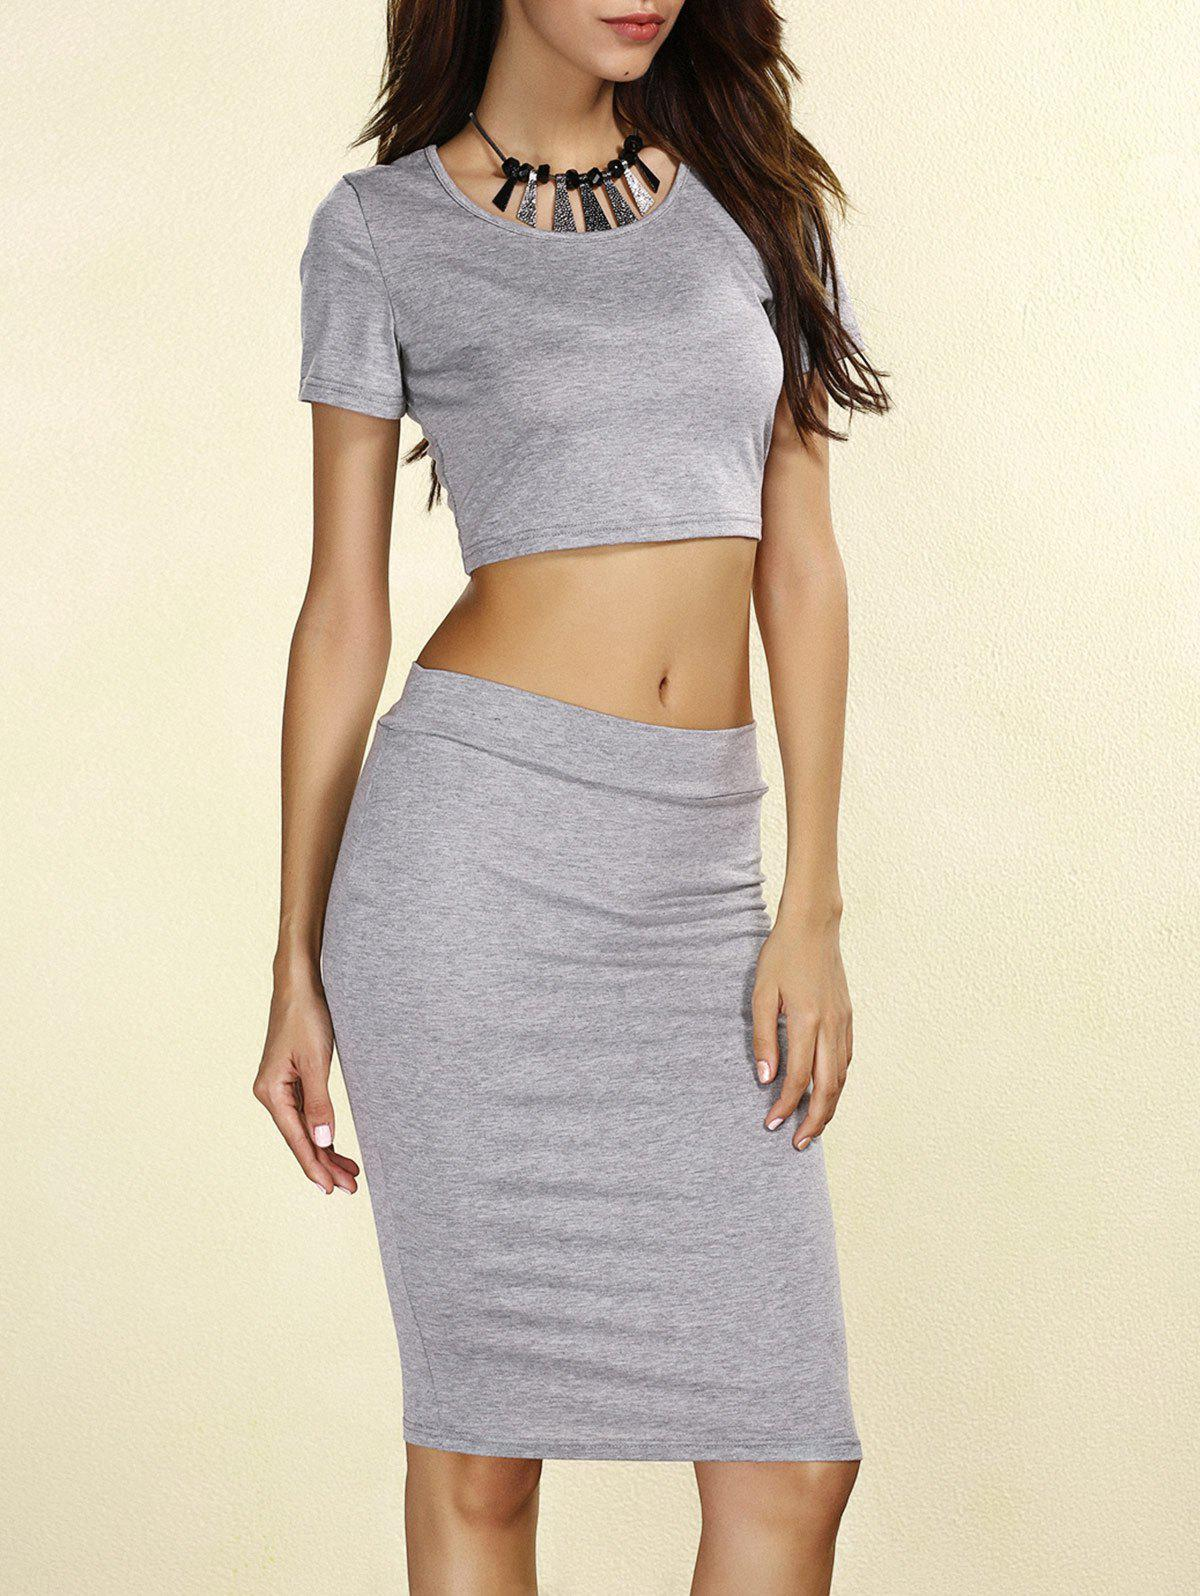 High Rise Two Piece Bodycon Dress - GRAY S